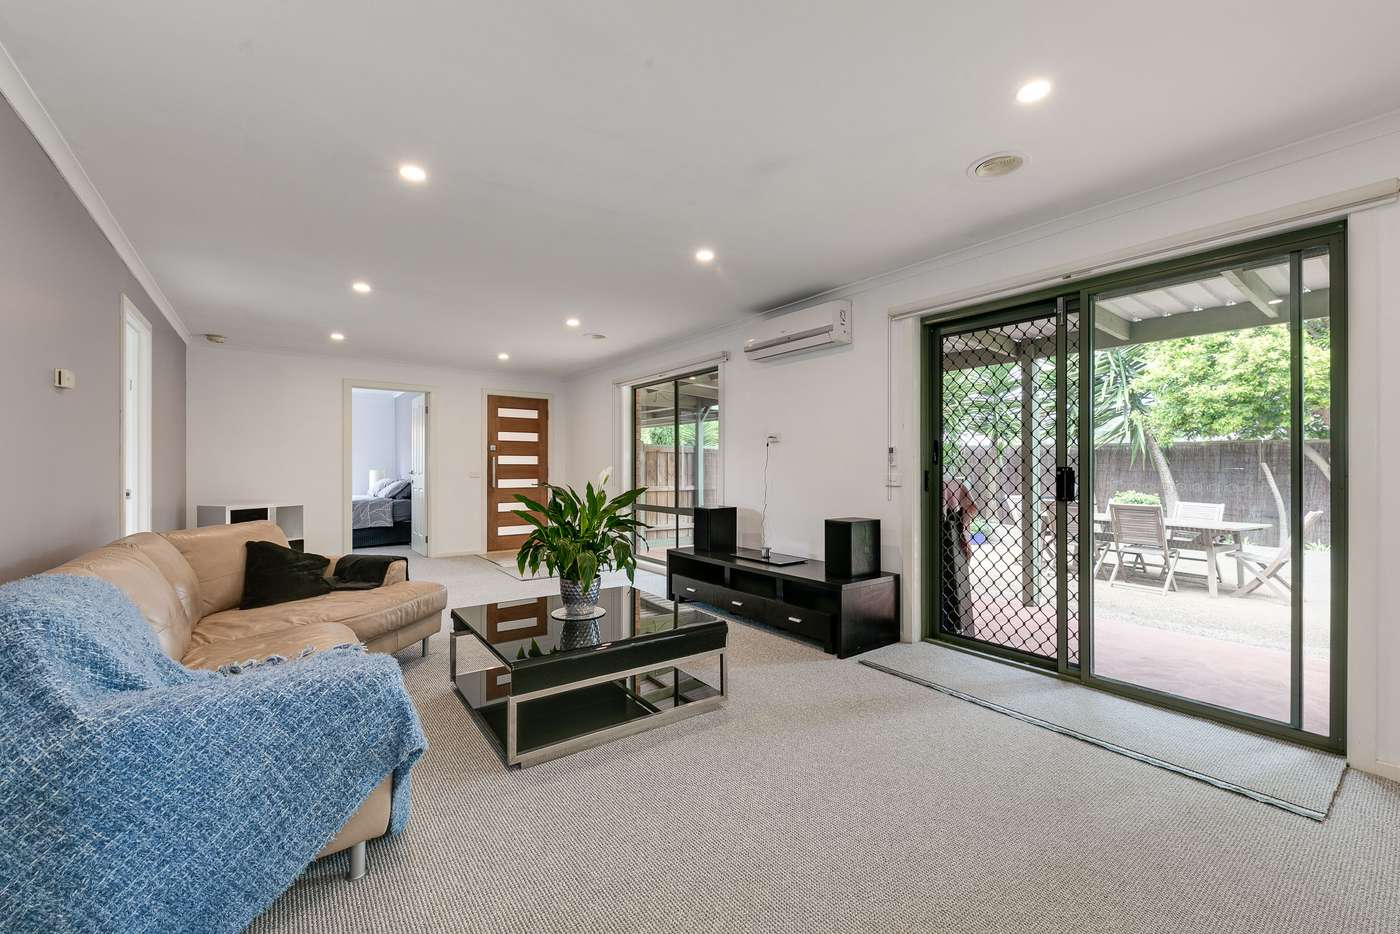 Seventh view of Homely house listing, 19 Dulnain Street, Mount Martha VIC 3934